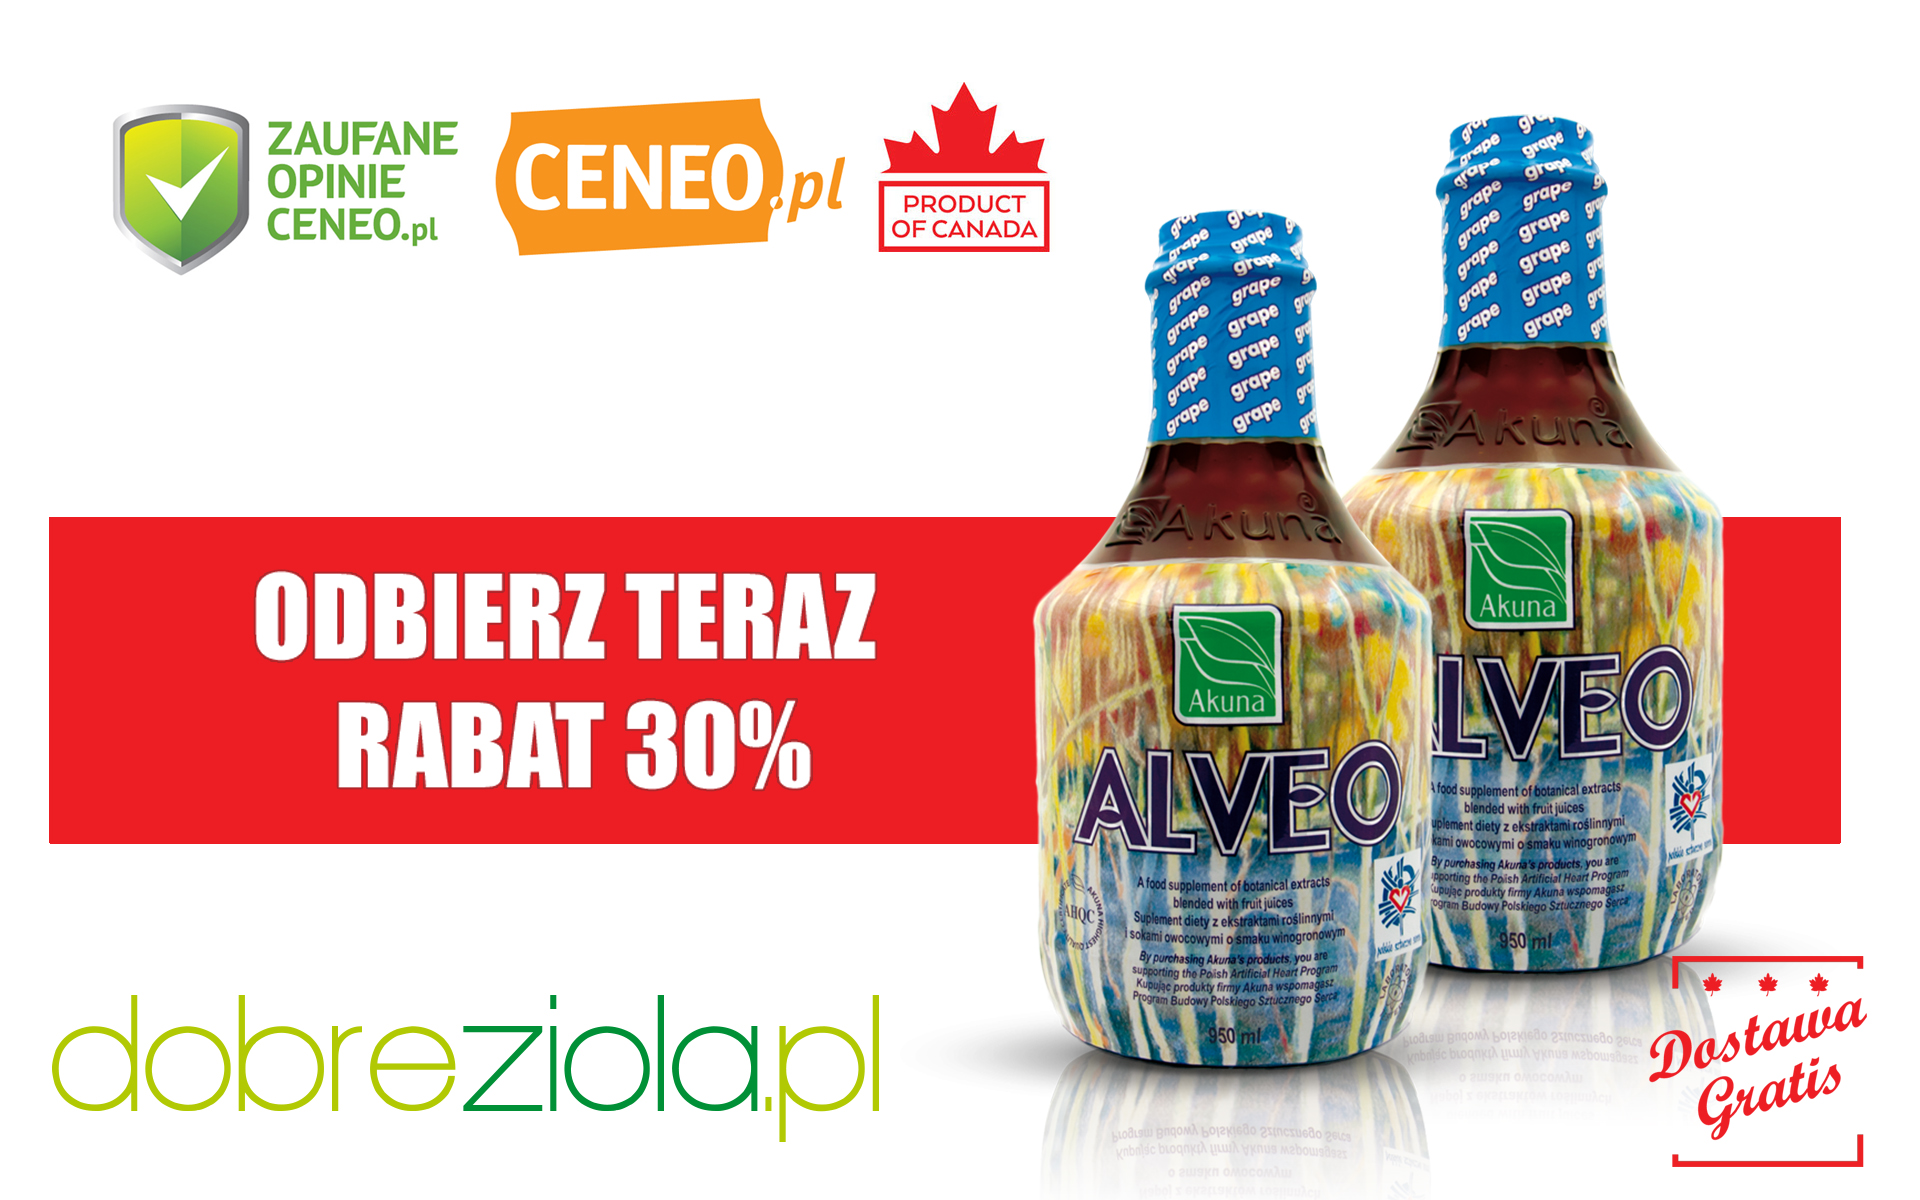 Alveo Grape - www.dobreziola.pl